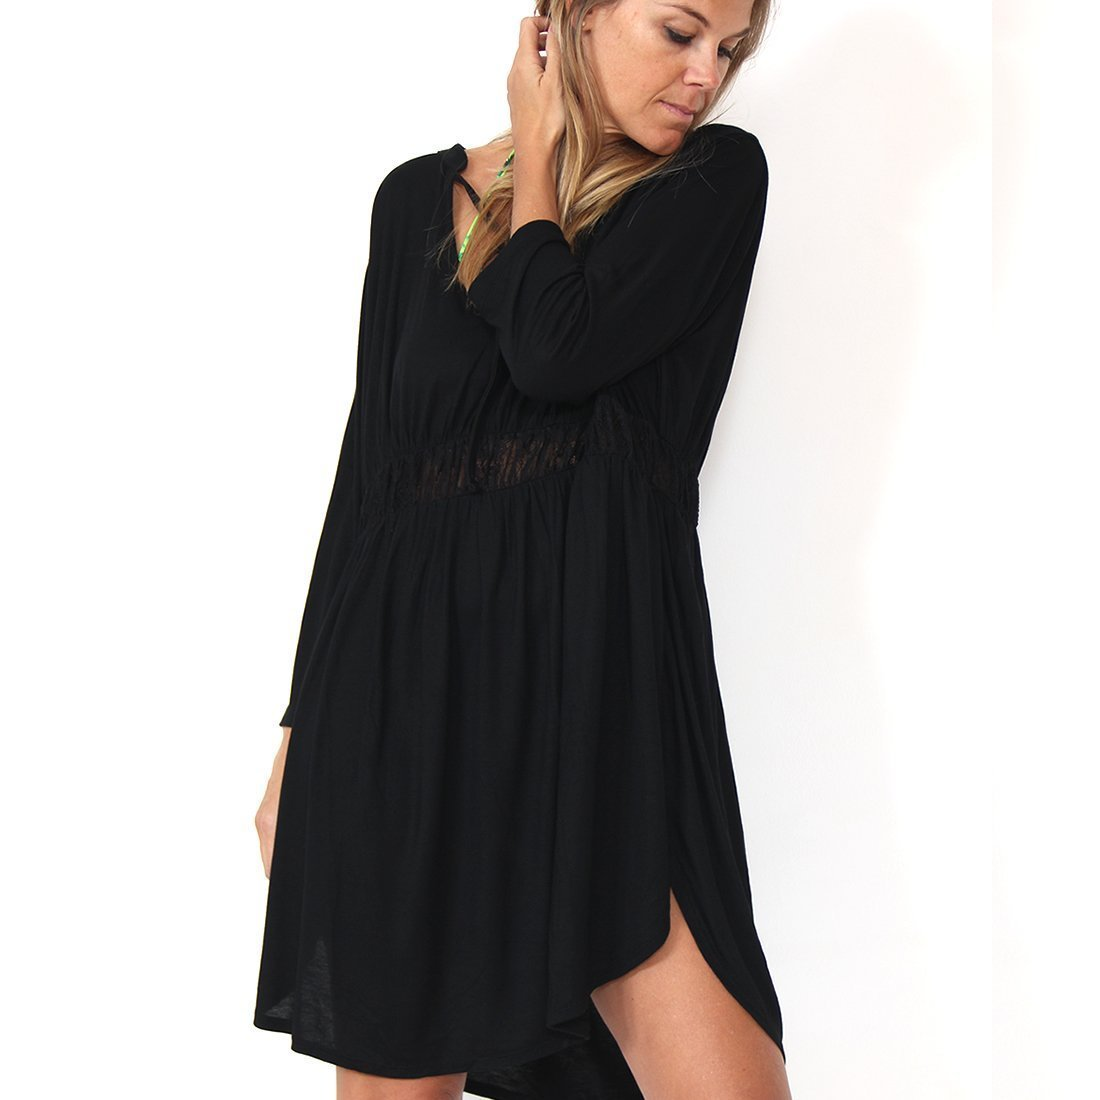 Murliyn Womens Little Black T Shirt Dress Tunic Top Tie Neck